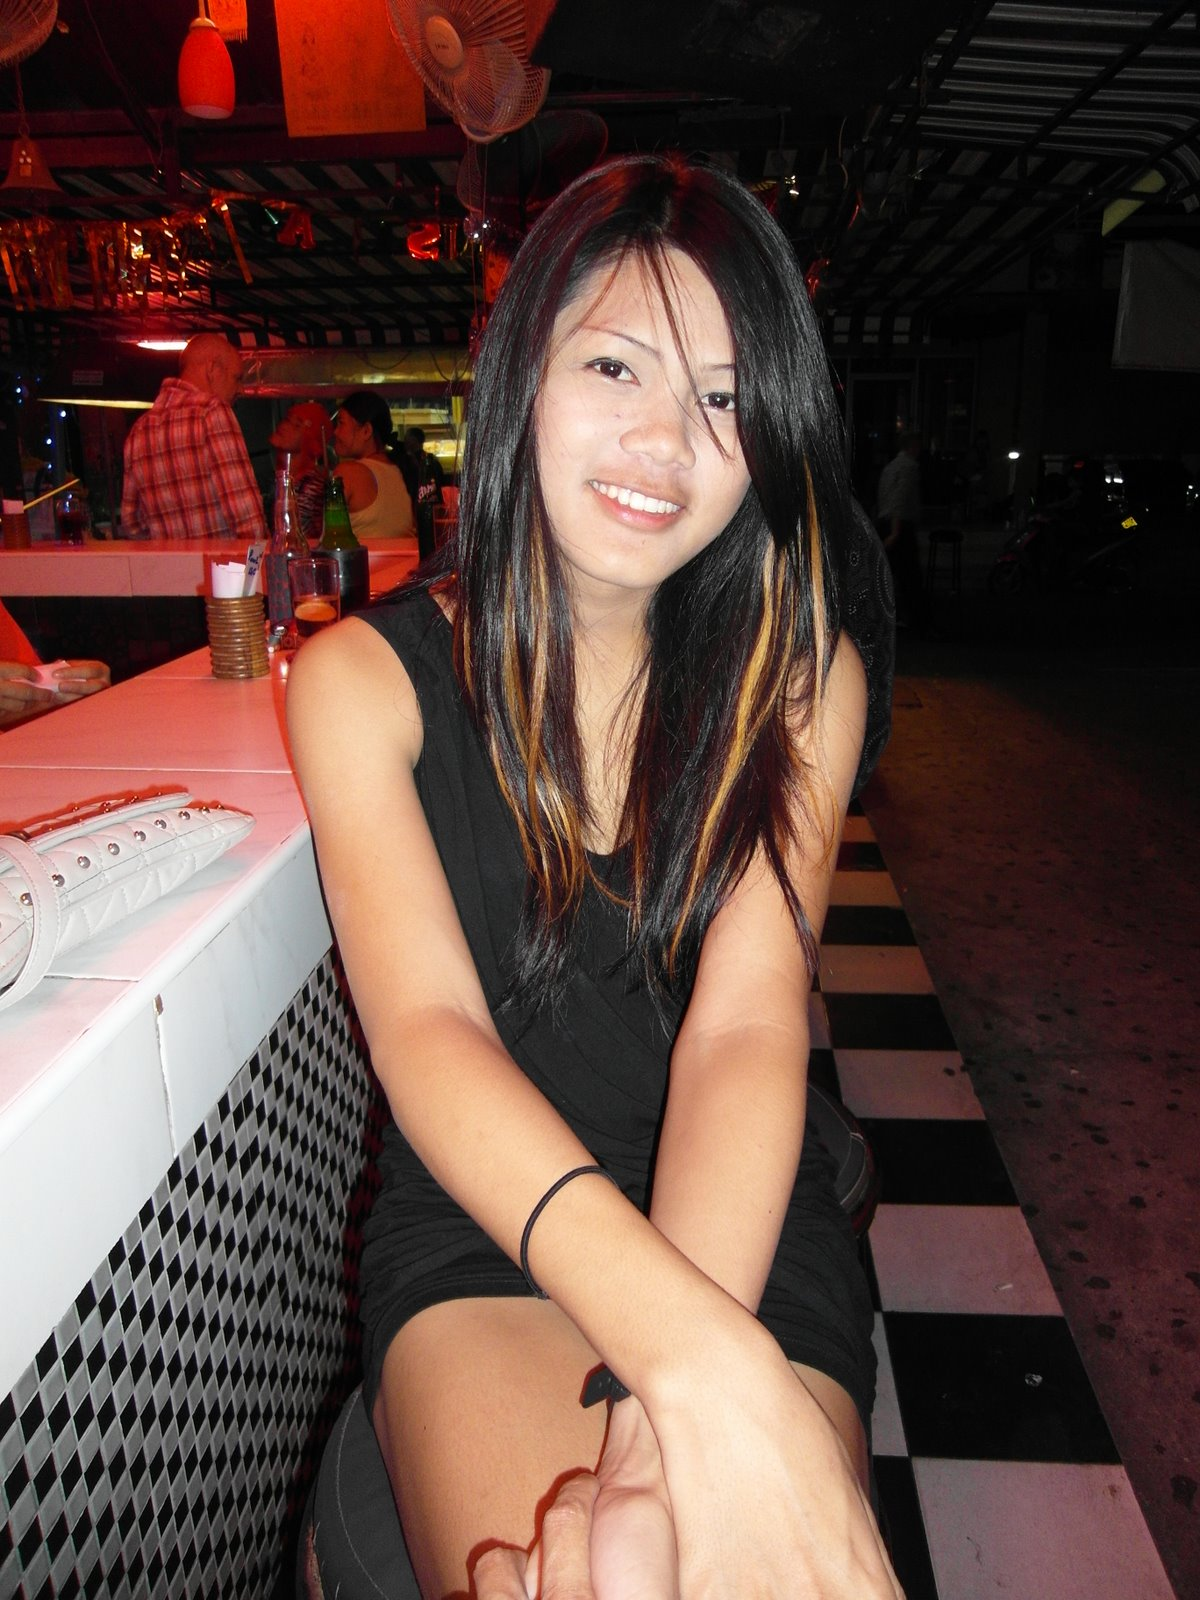 Asian bar girl photo photos, two girls naked selfies